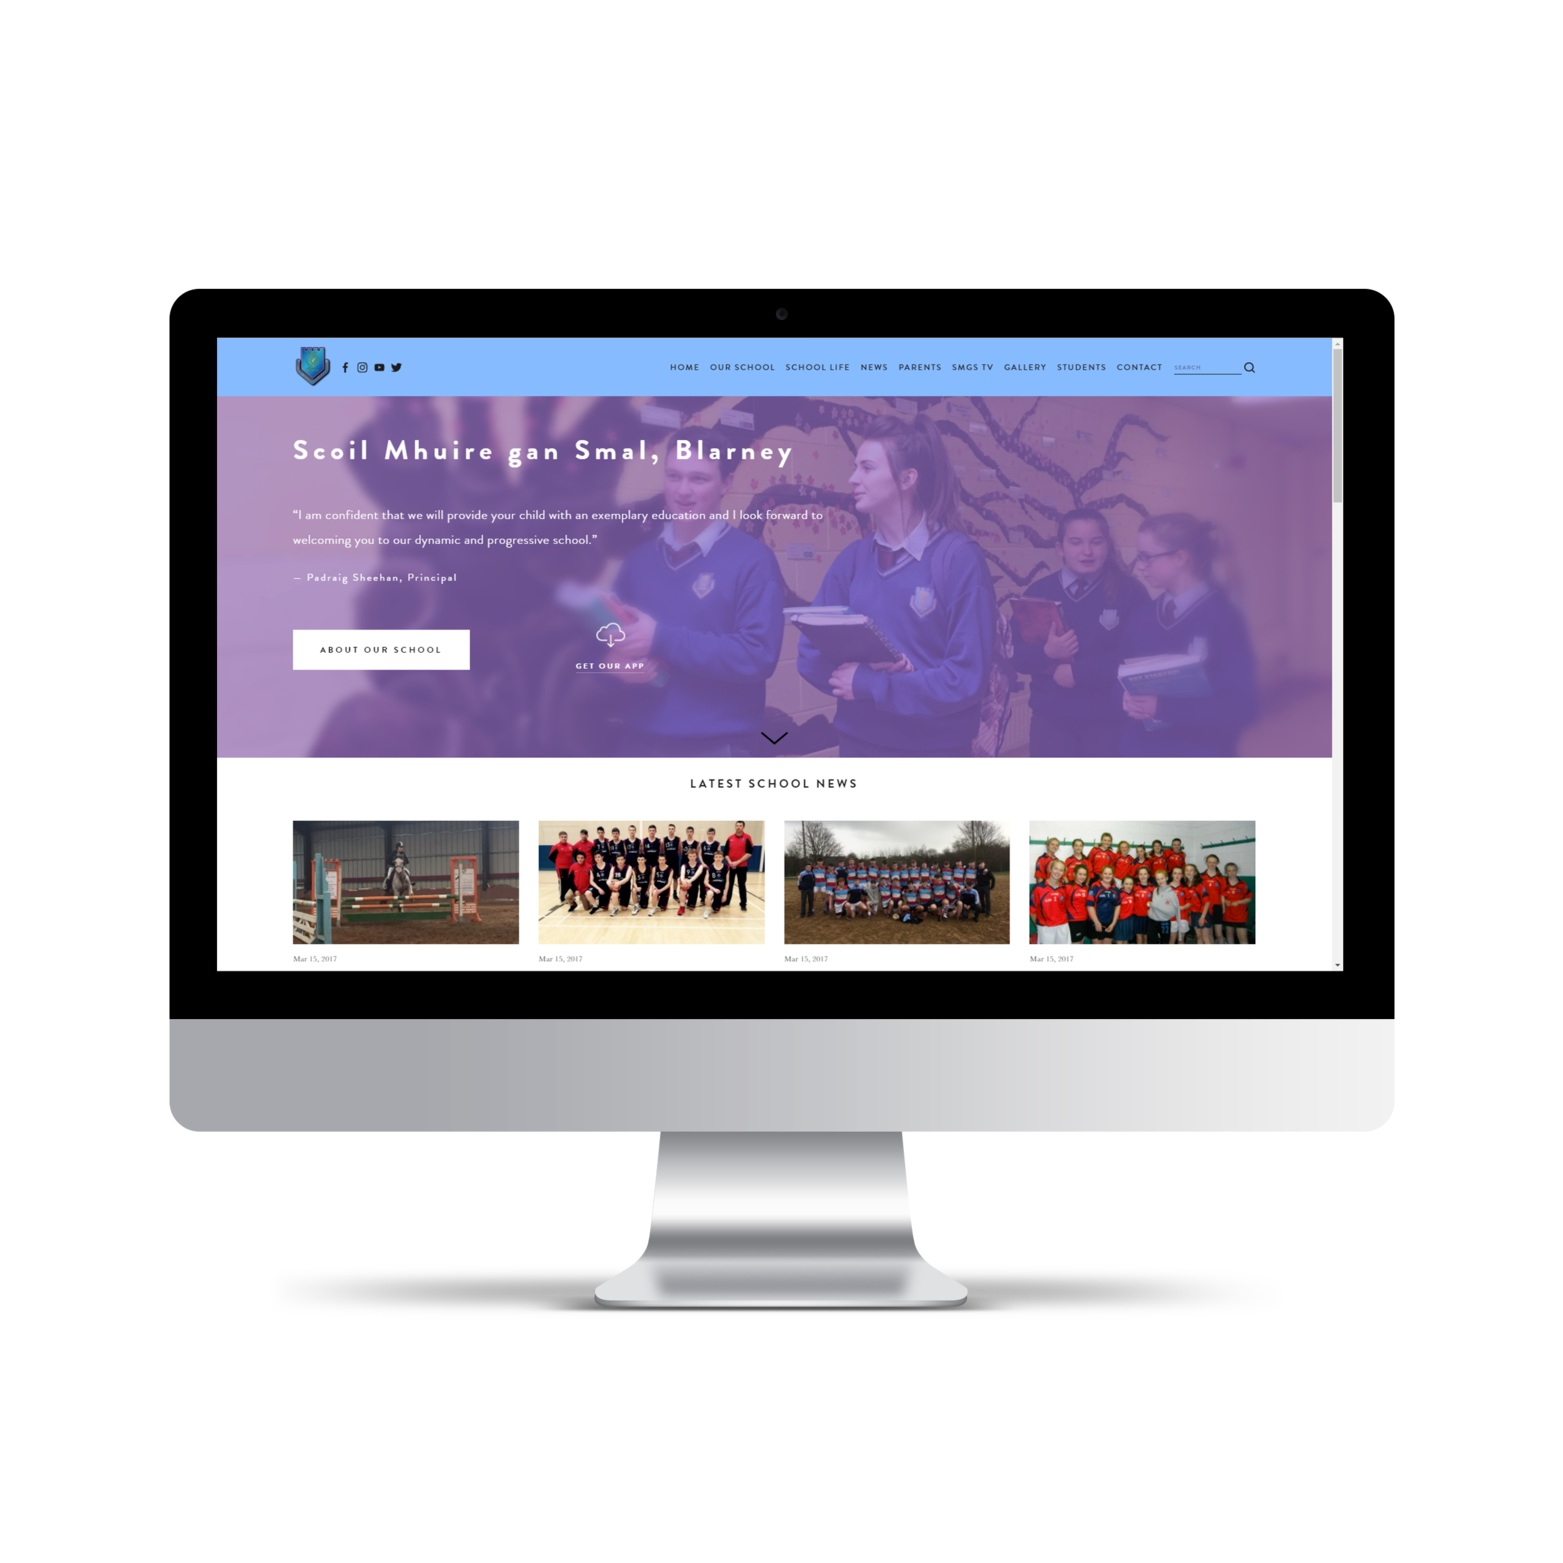 Scoil Mhuire gan Smál, Blarney - website - Adaptive custom website with video background headers, e-news, event calendar, YouTube channel, news & events